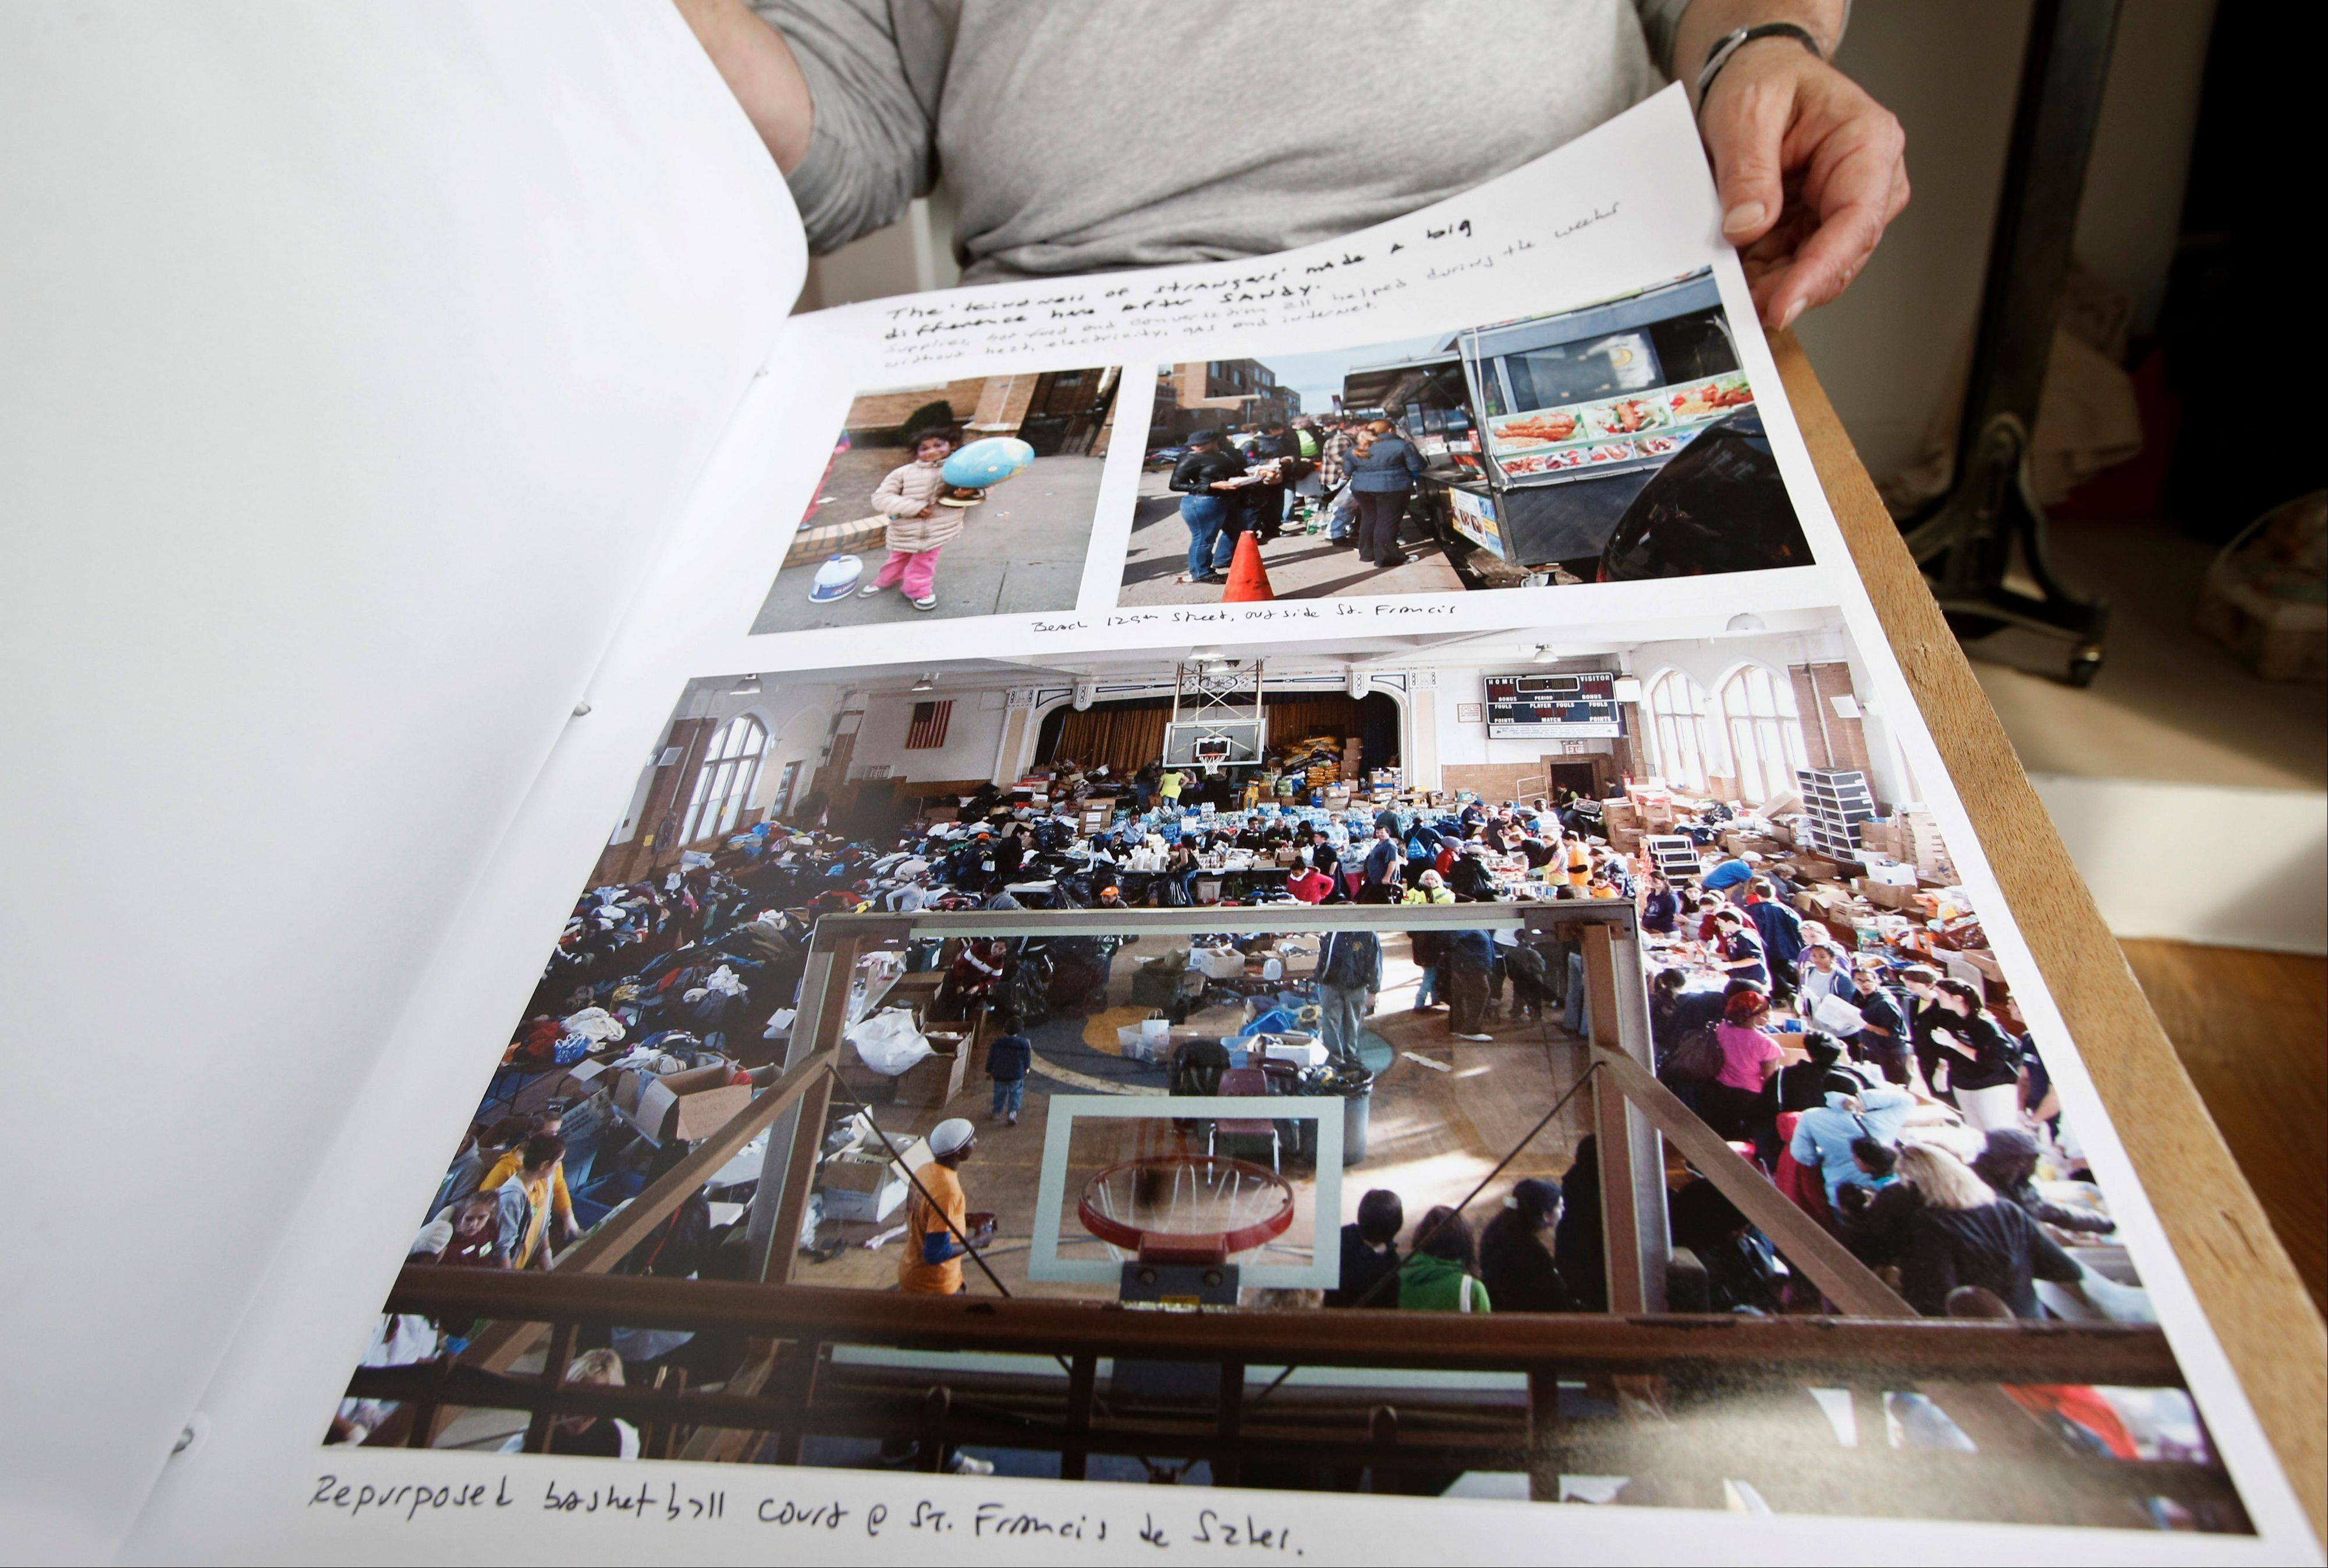 The lower photograph by Larry Racioppo was taken in the gymnasium at St. Francis de Sales Parish where residents could go to pick up food, clothing and supplies to replace items they lost in Superstorm Sandy.